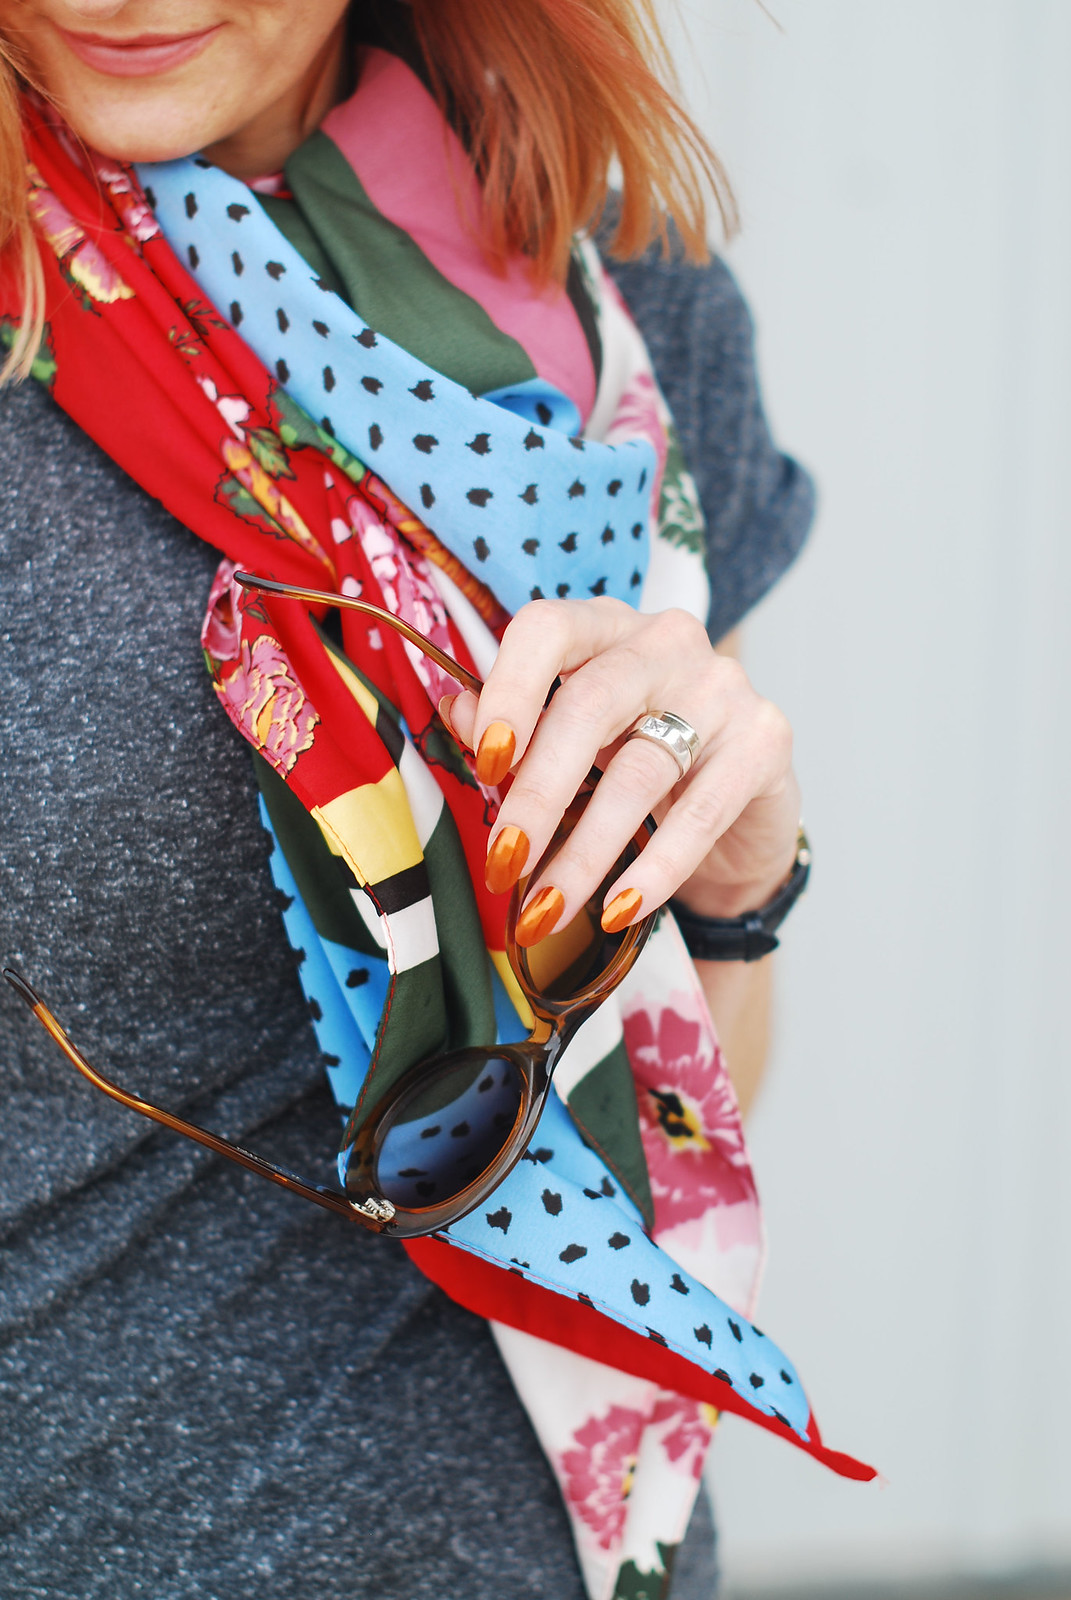 Simple grey and khaki outfit accessorised with brights: Multicoloured scarf, pink satchel bag, red lace-up espadrilles | Not Dressed As Lamb, over 40 style